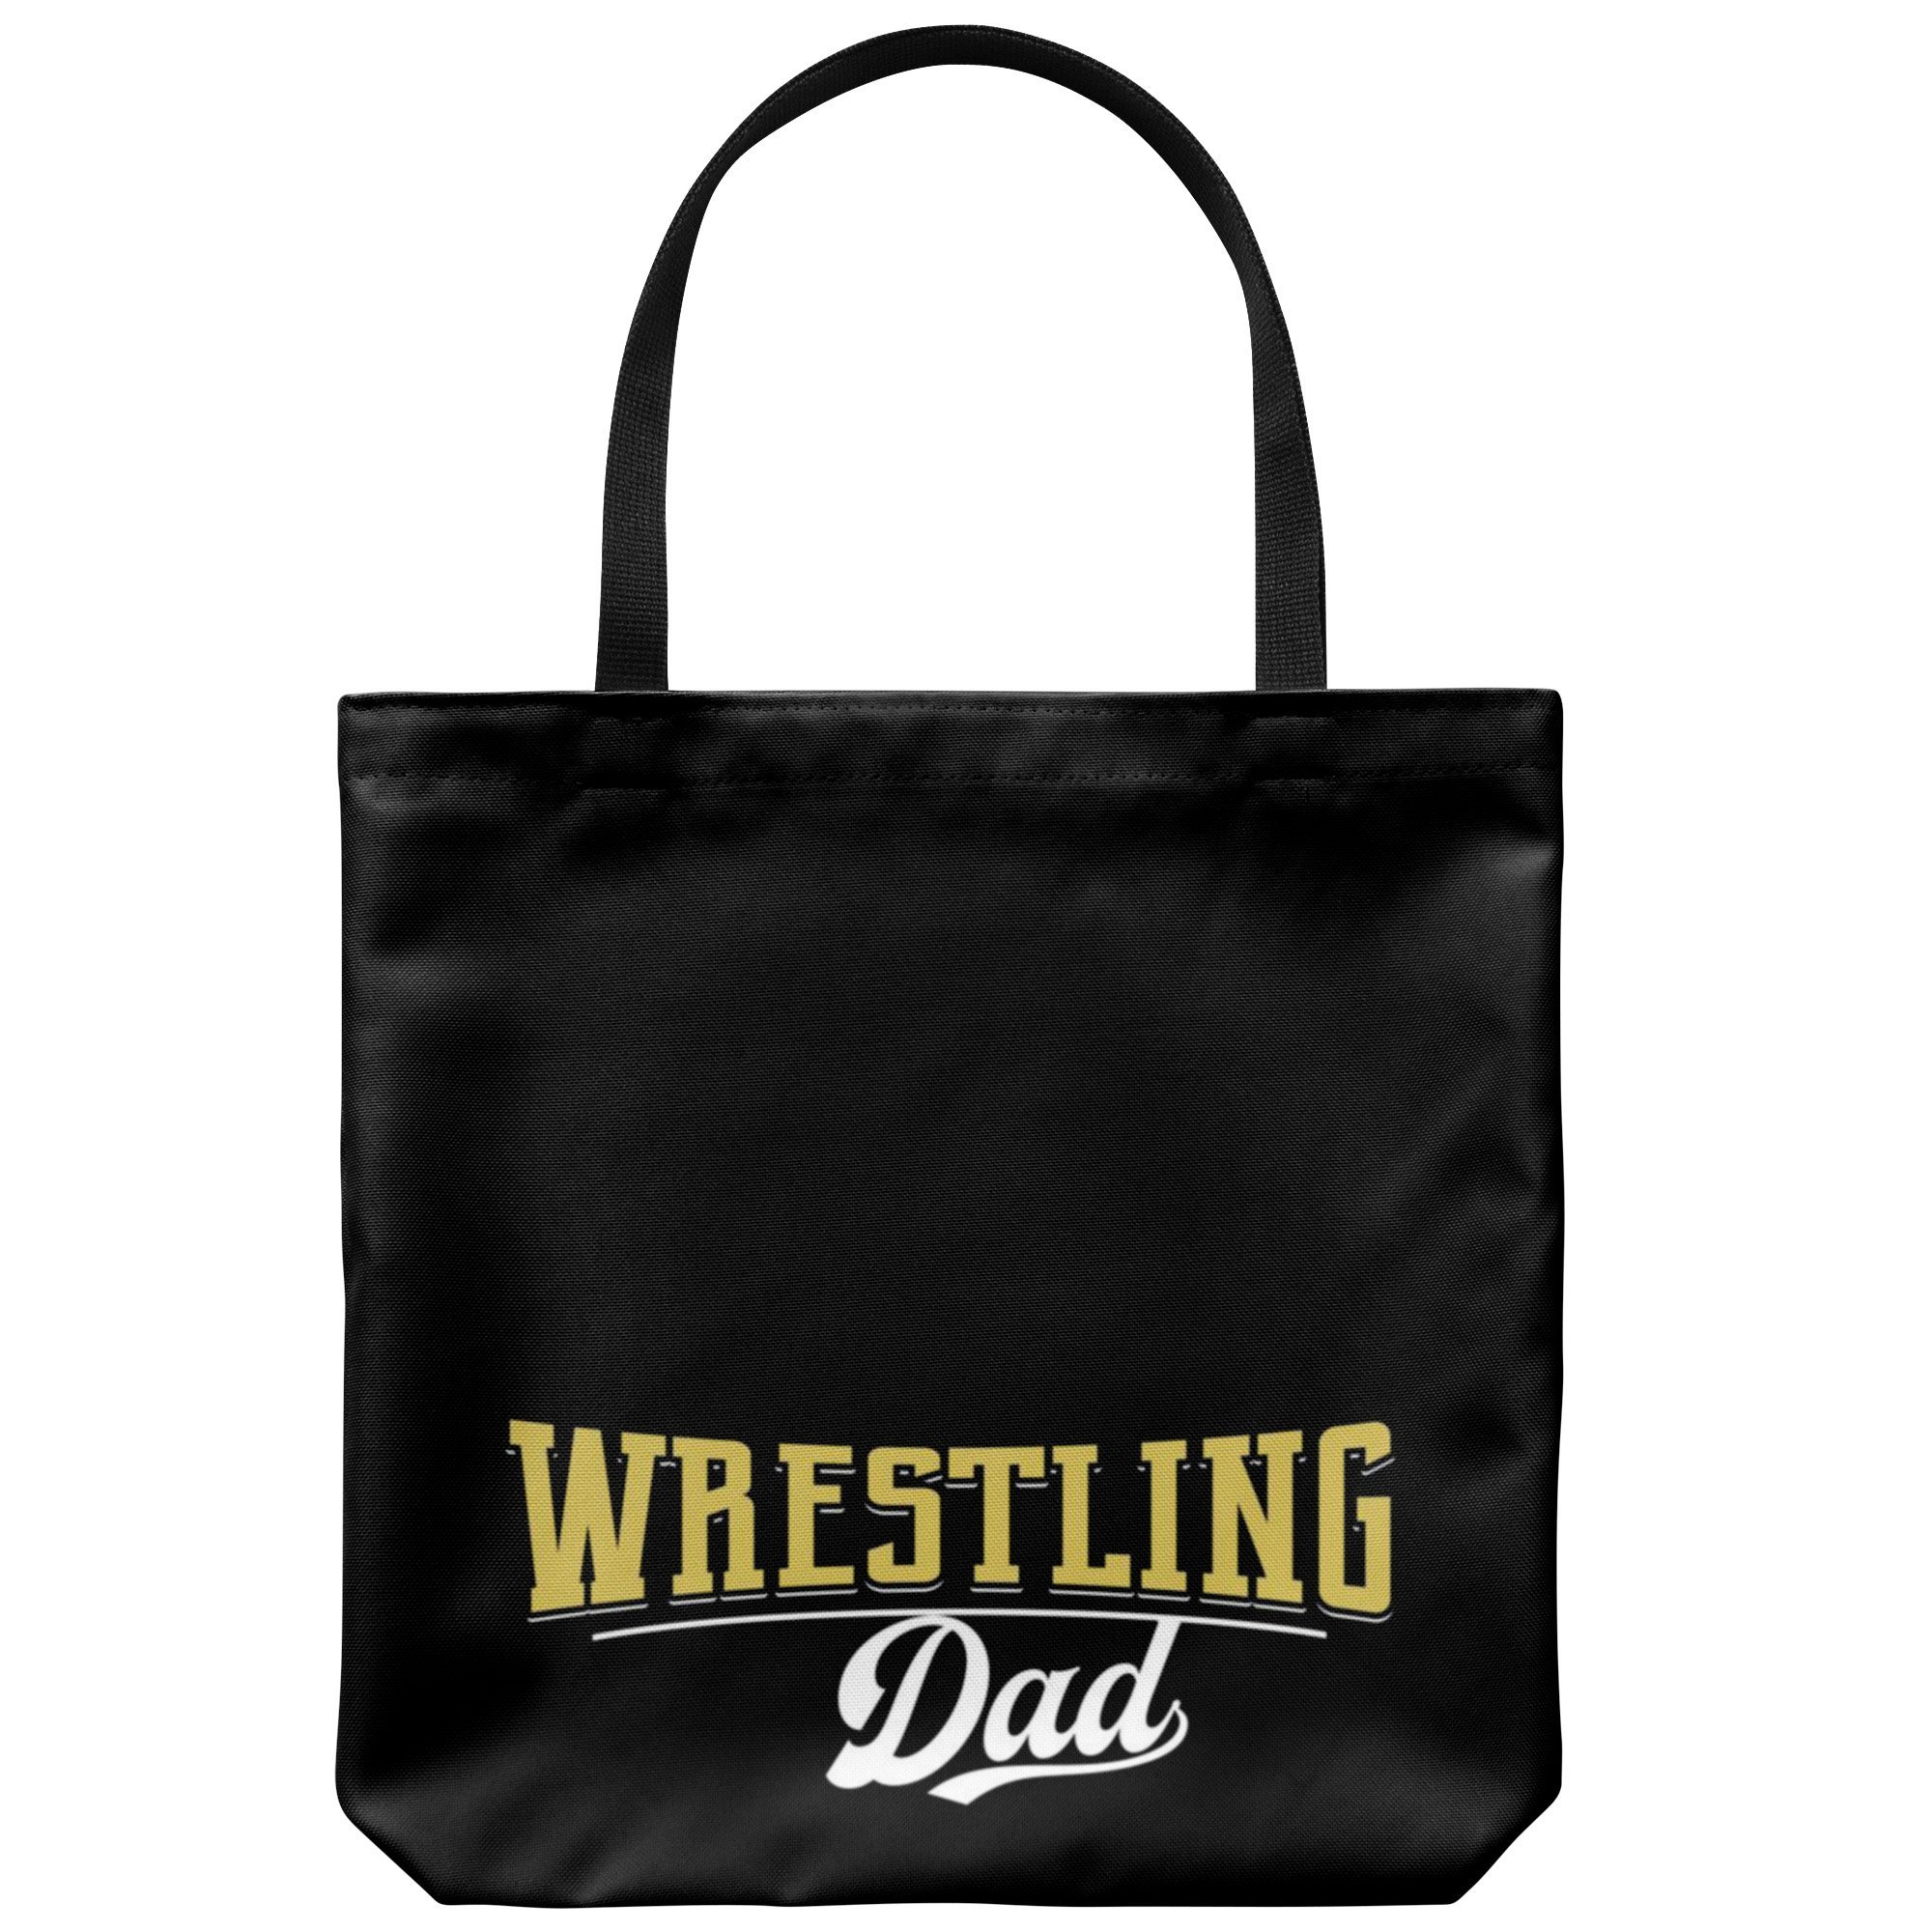 Wrestling Dad Canvas Tote Bag Funny Father's Day Wrestler Gifts Proud - Text Graphics